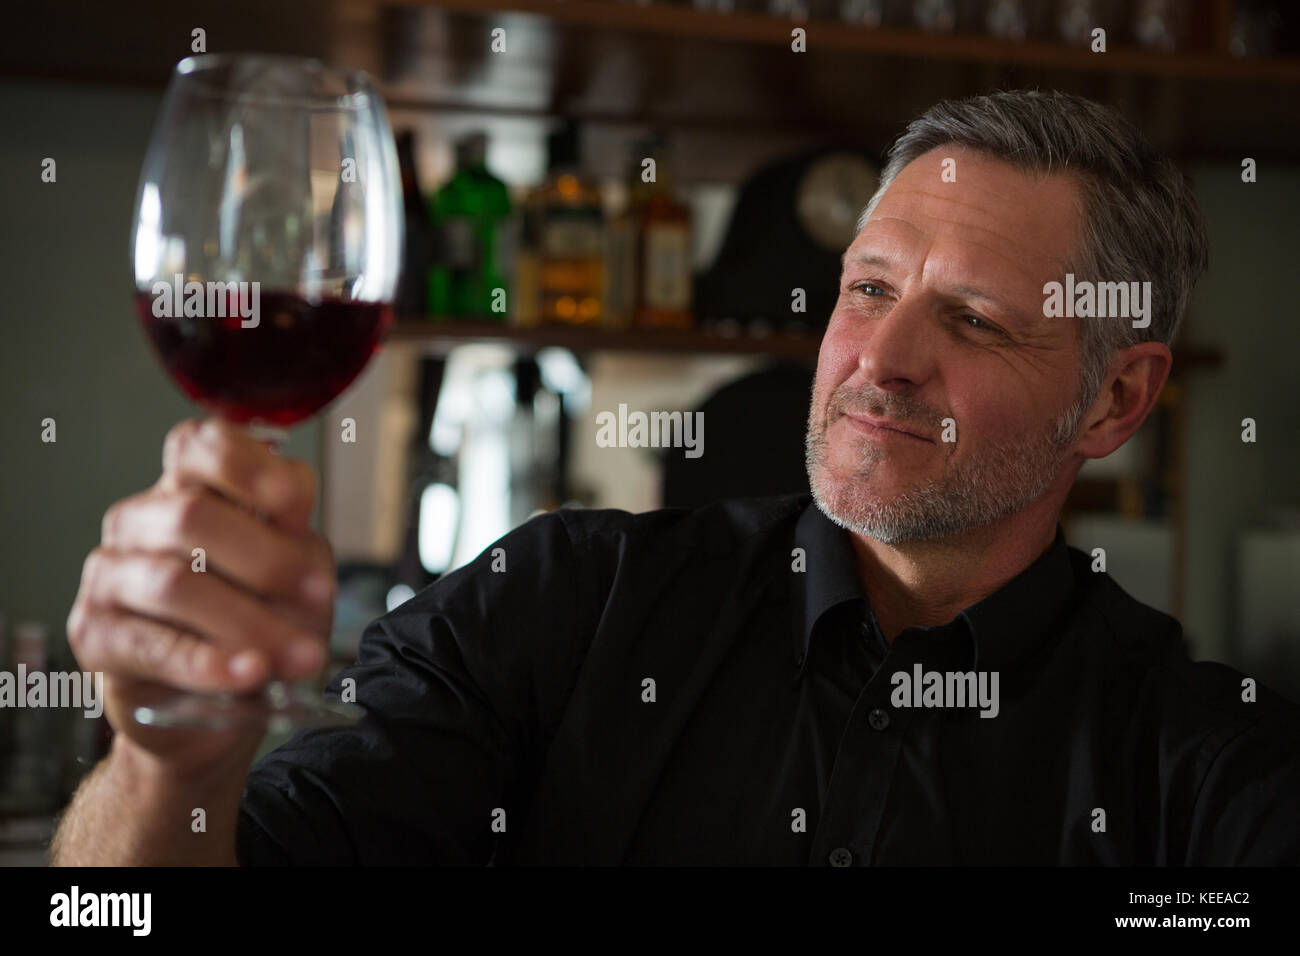 Close-Up of waiter looking at a glass of wine in restaurant - Stock Image